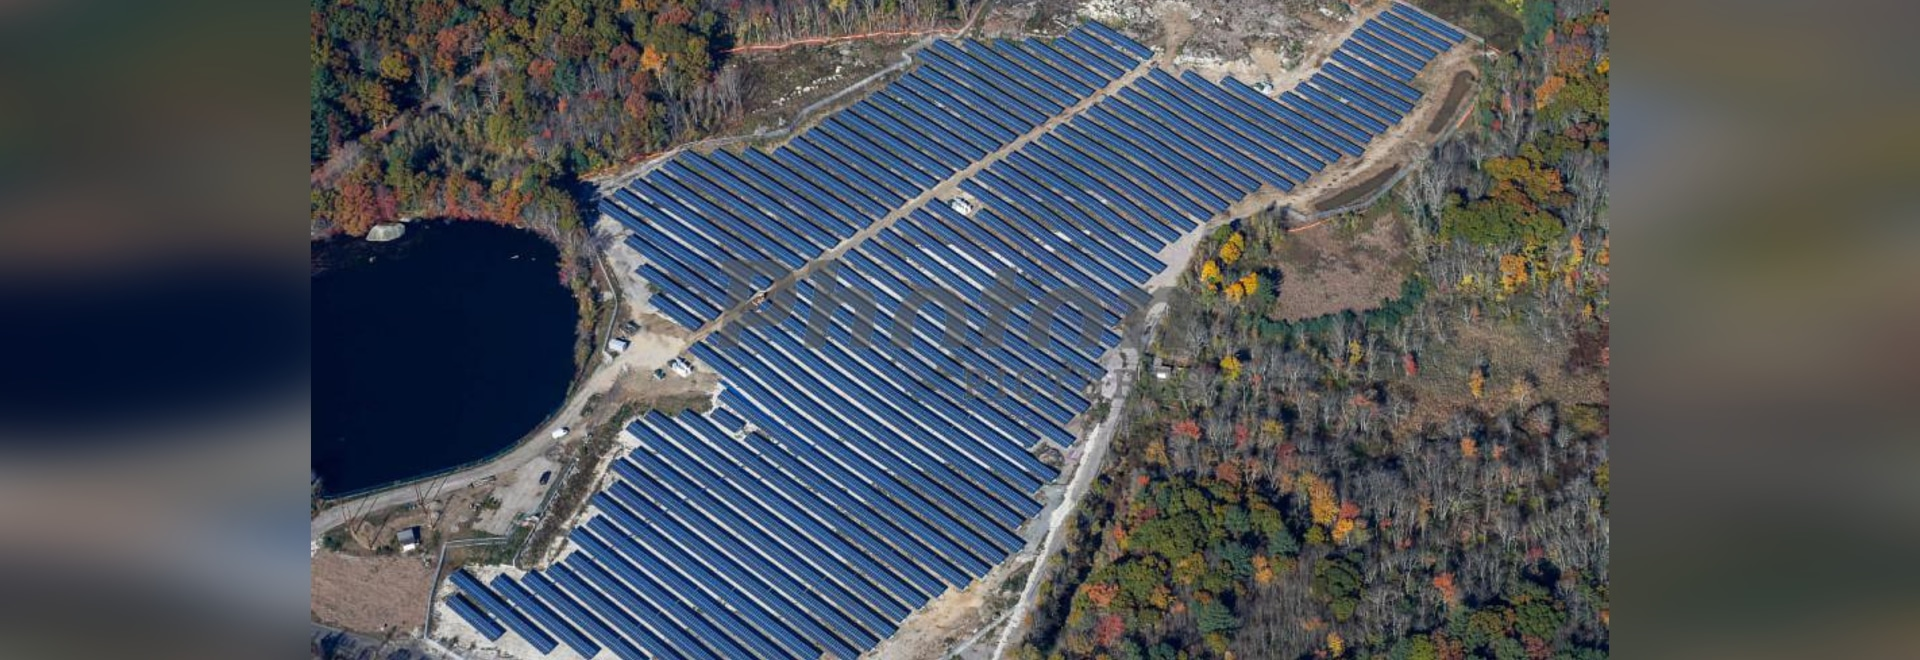 4,75 »Bird Machine« solar farm built by Soltage in Massachusetts